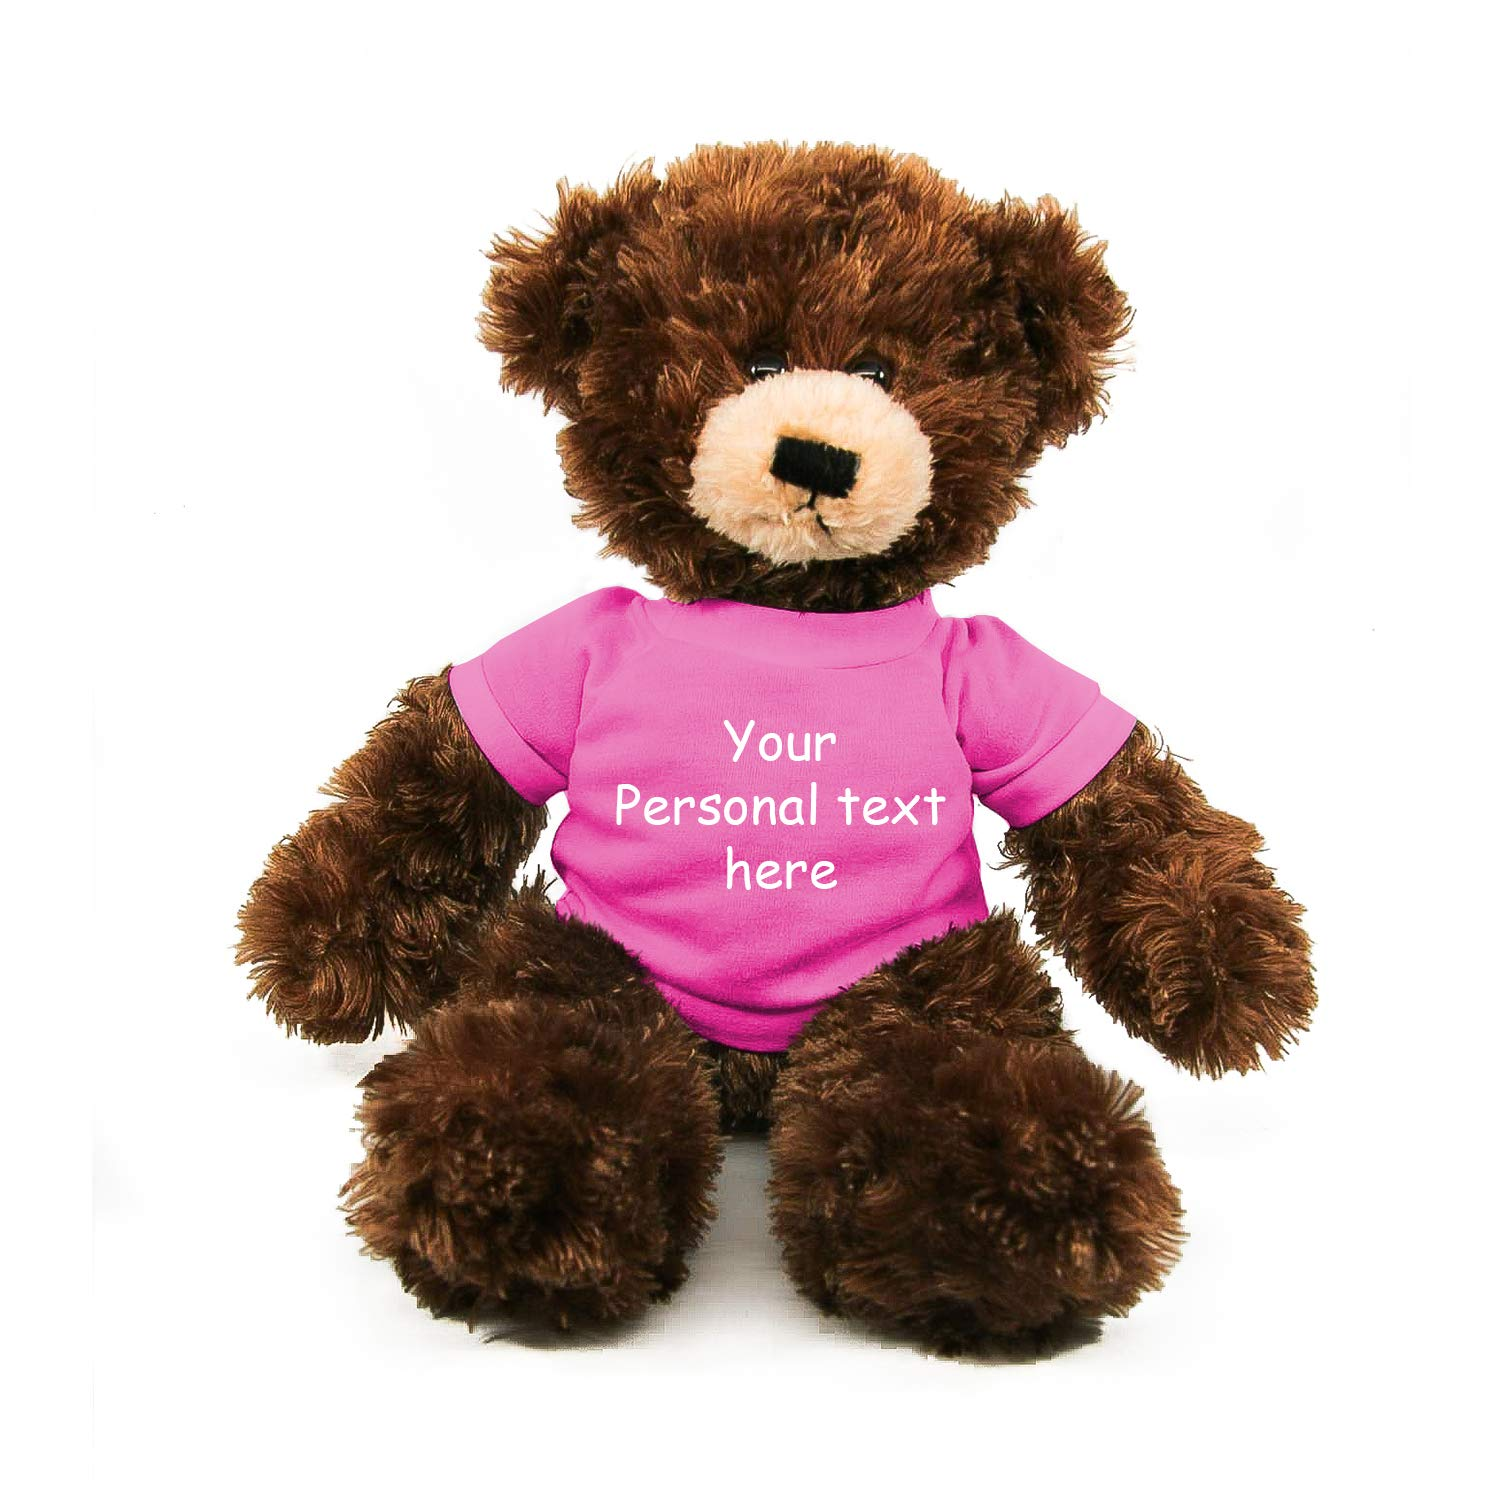 Plushland Chocolate Brandon Teddy Bear 12 Inch, Stuffed Animal Personalized Gift - Custom Text on - Great Present for Mothers Day, Valentine Day, Graduation Day, Birthday (Pink Shirt)